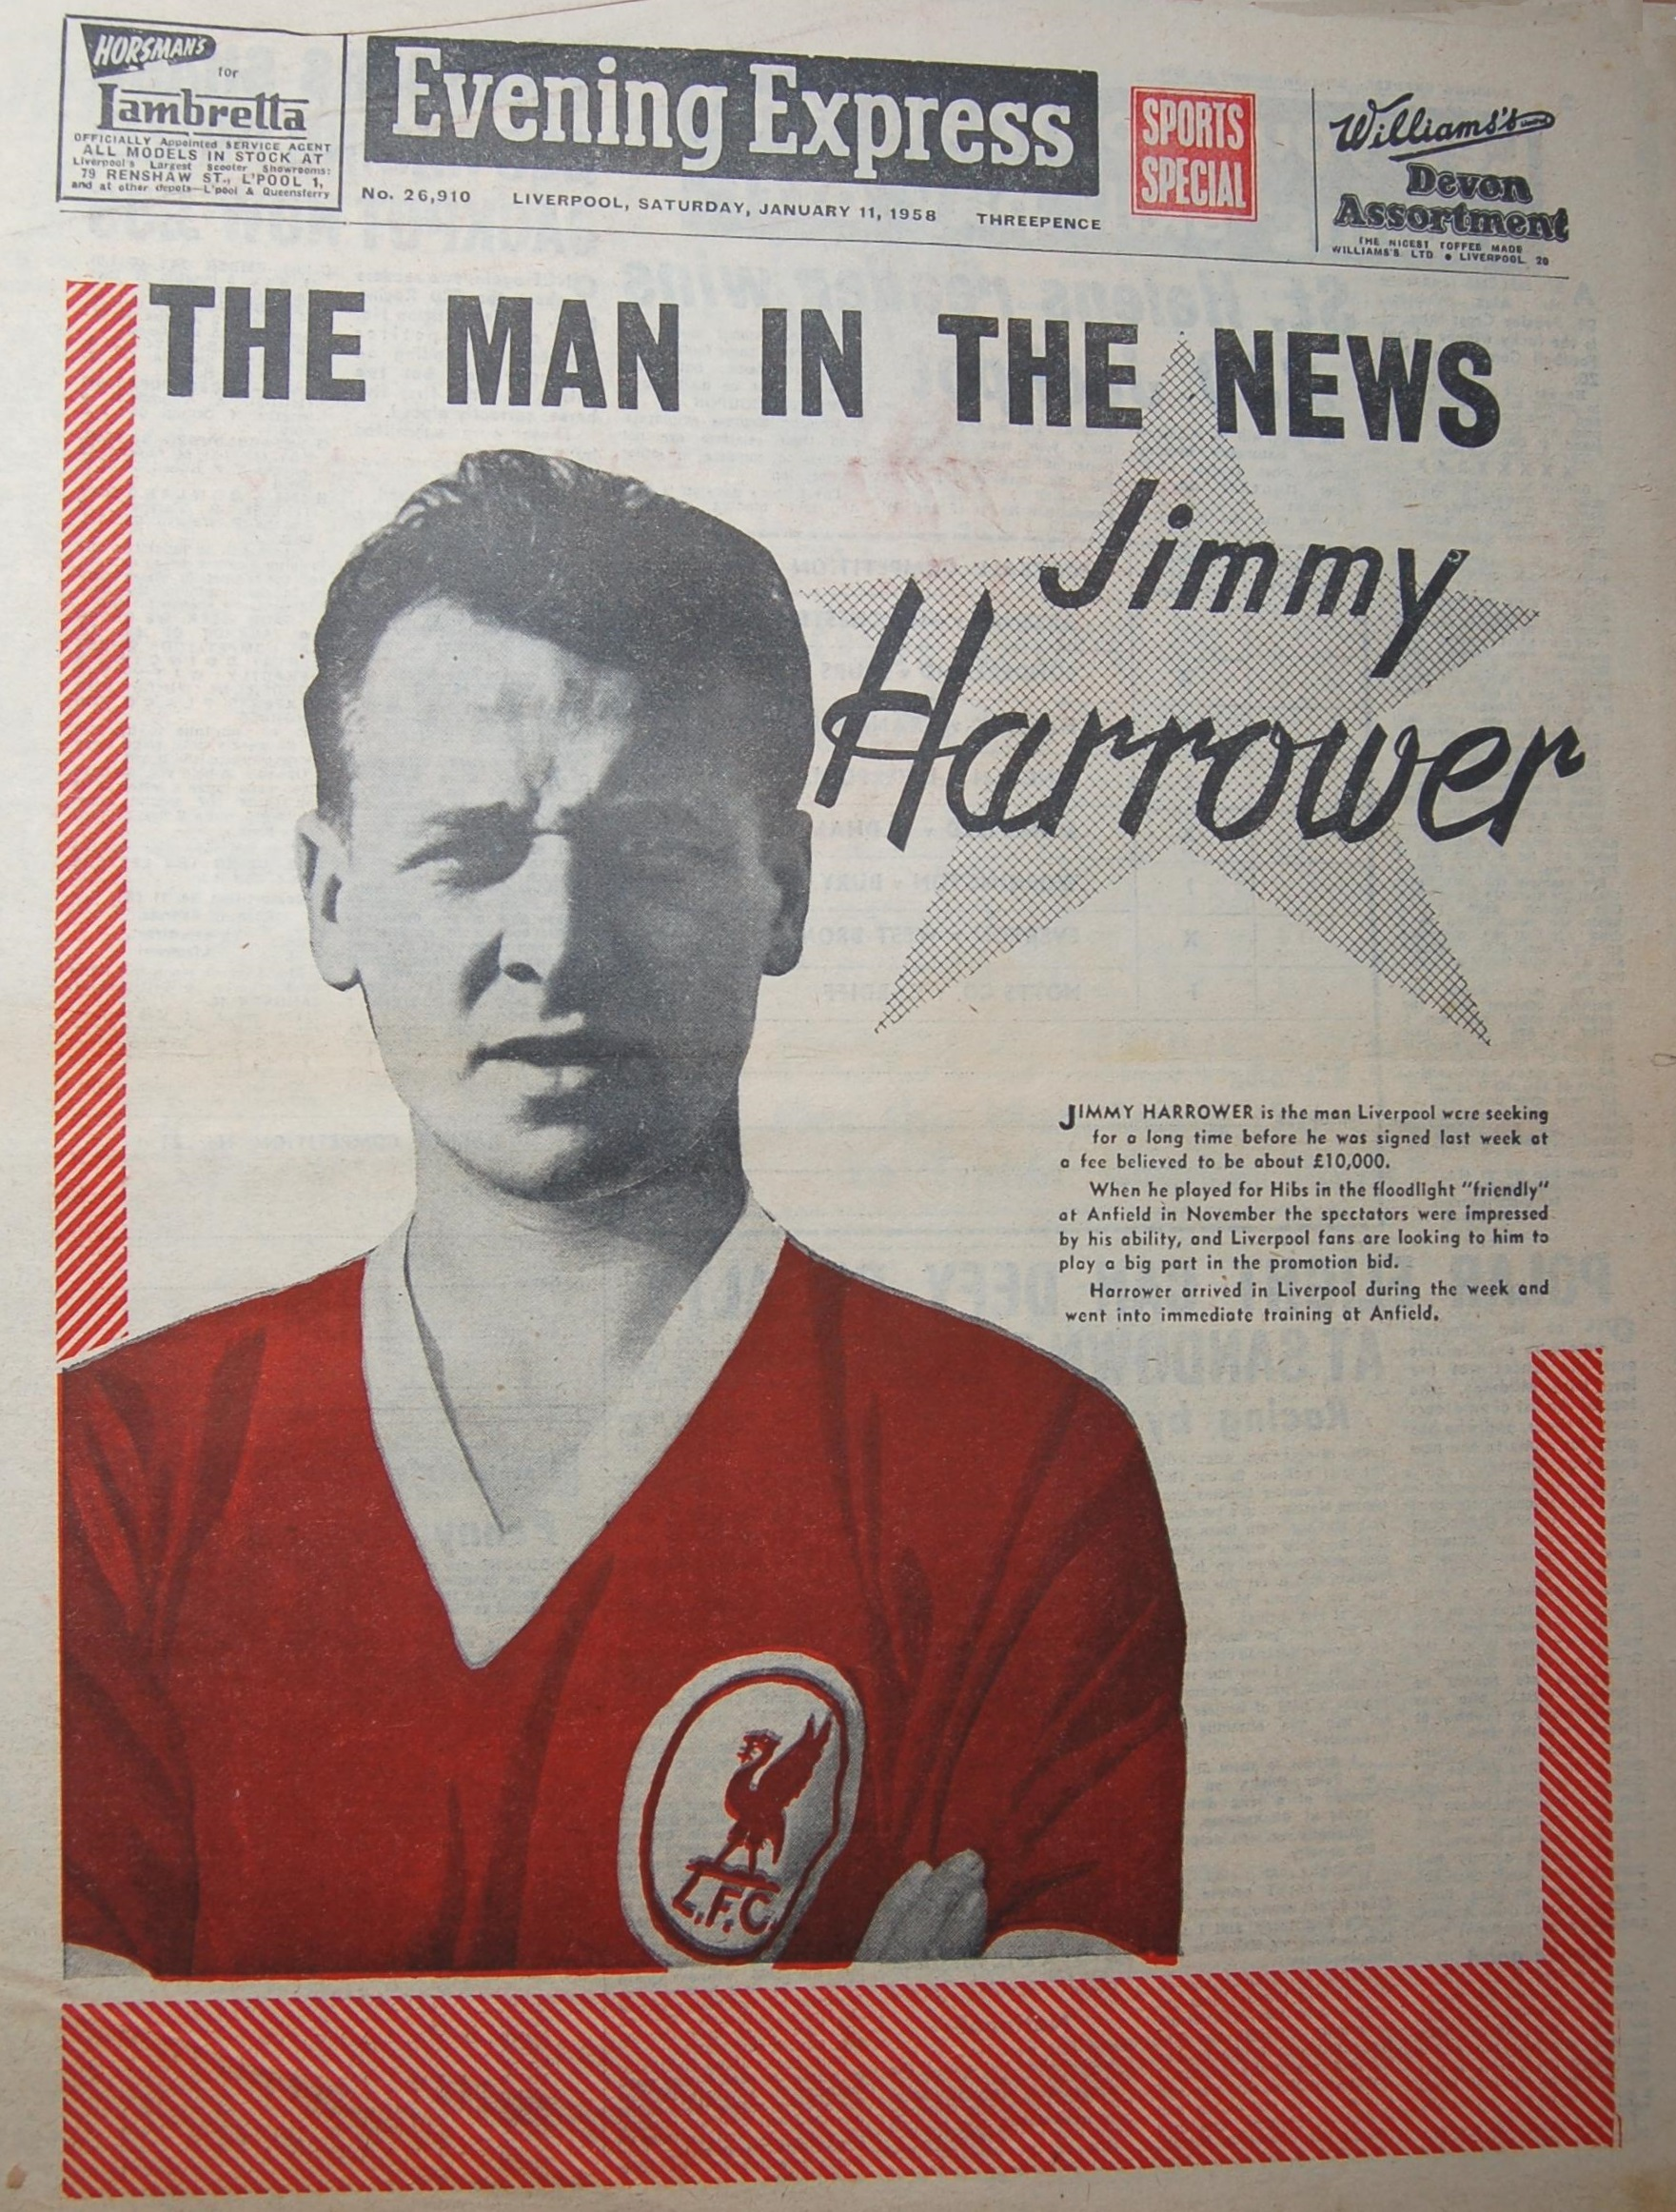 Harrower on the cover of the Evening Express on 11 January 1958